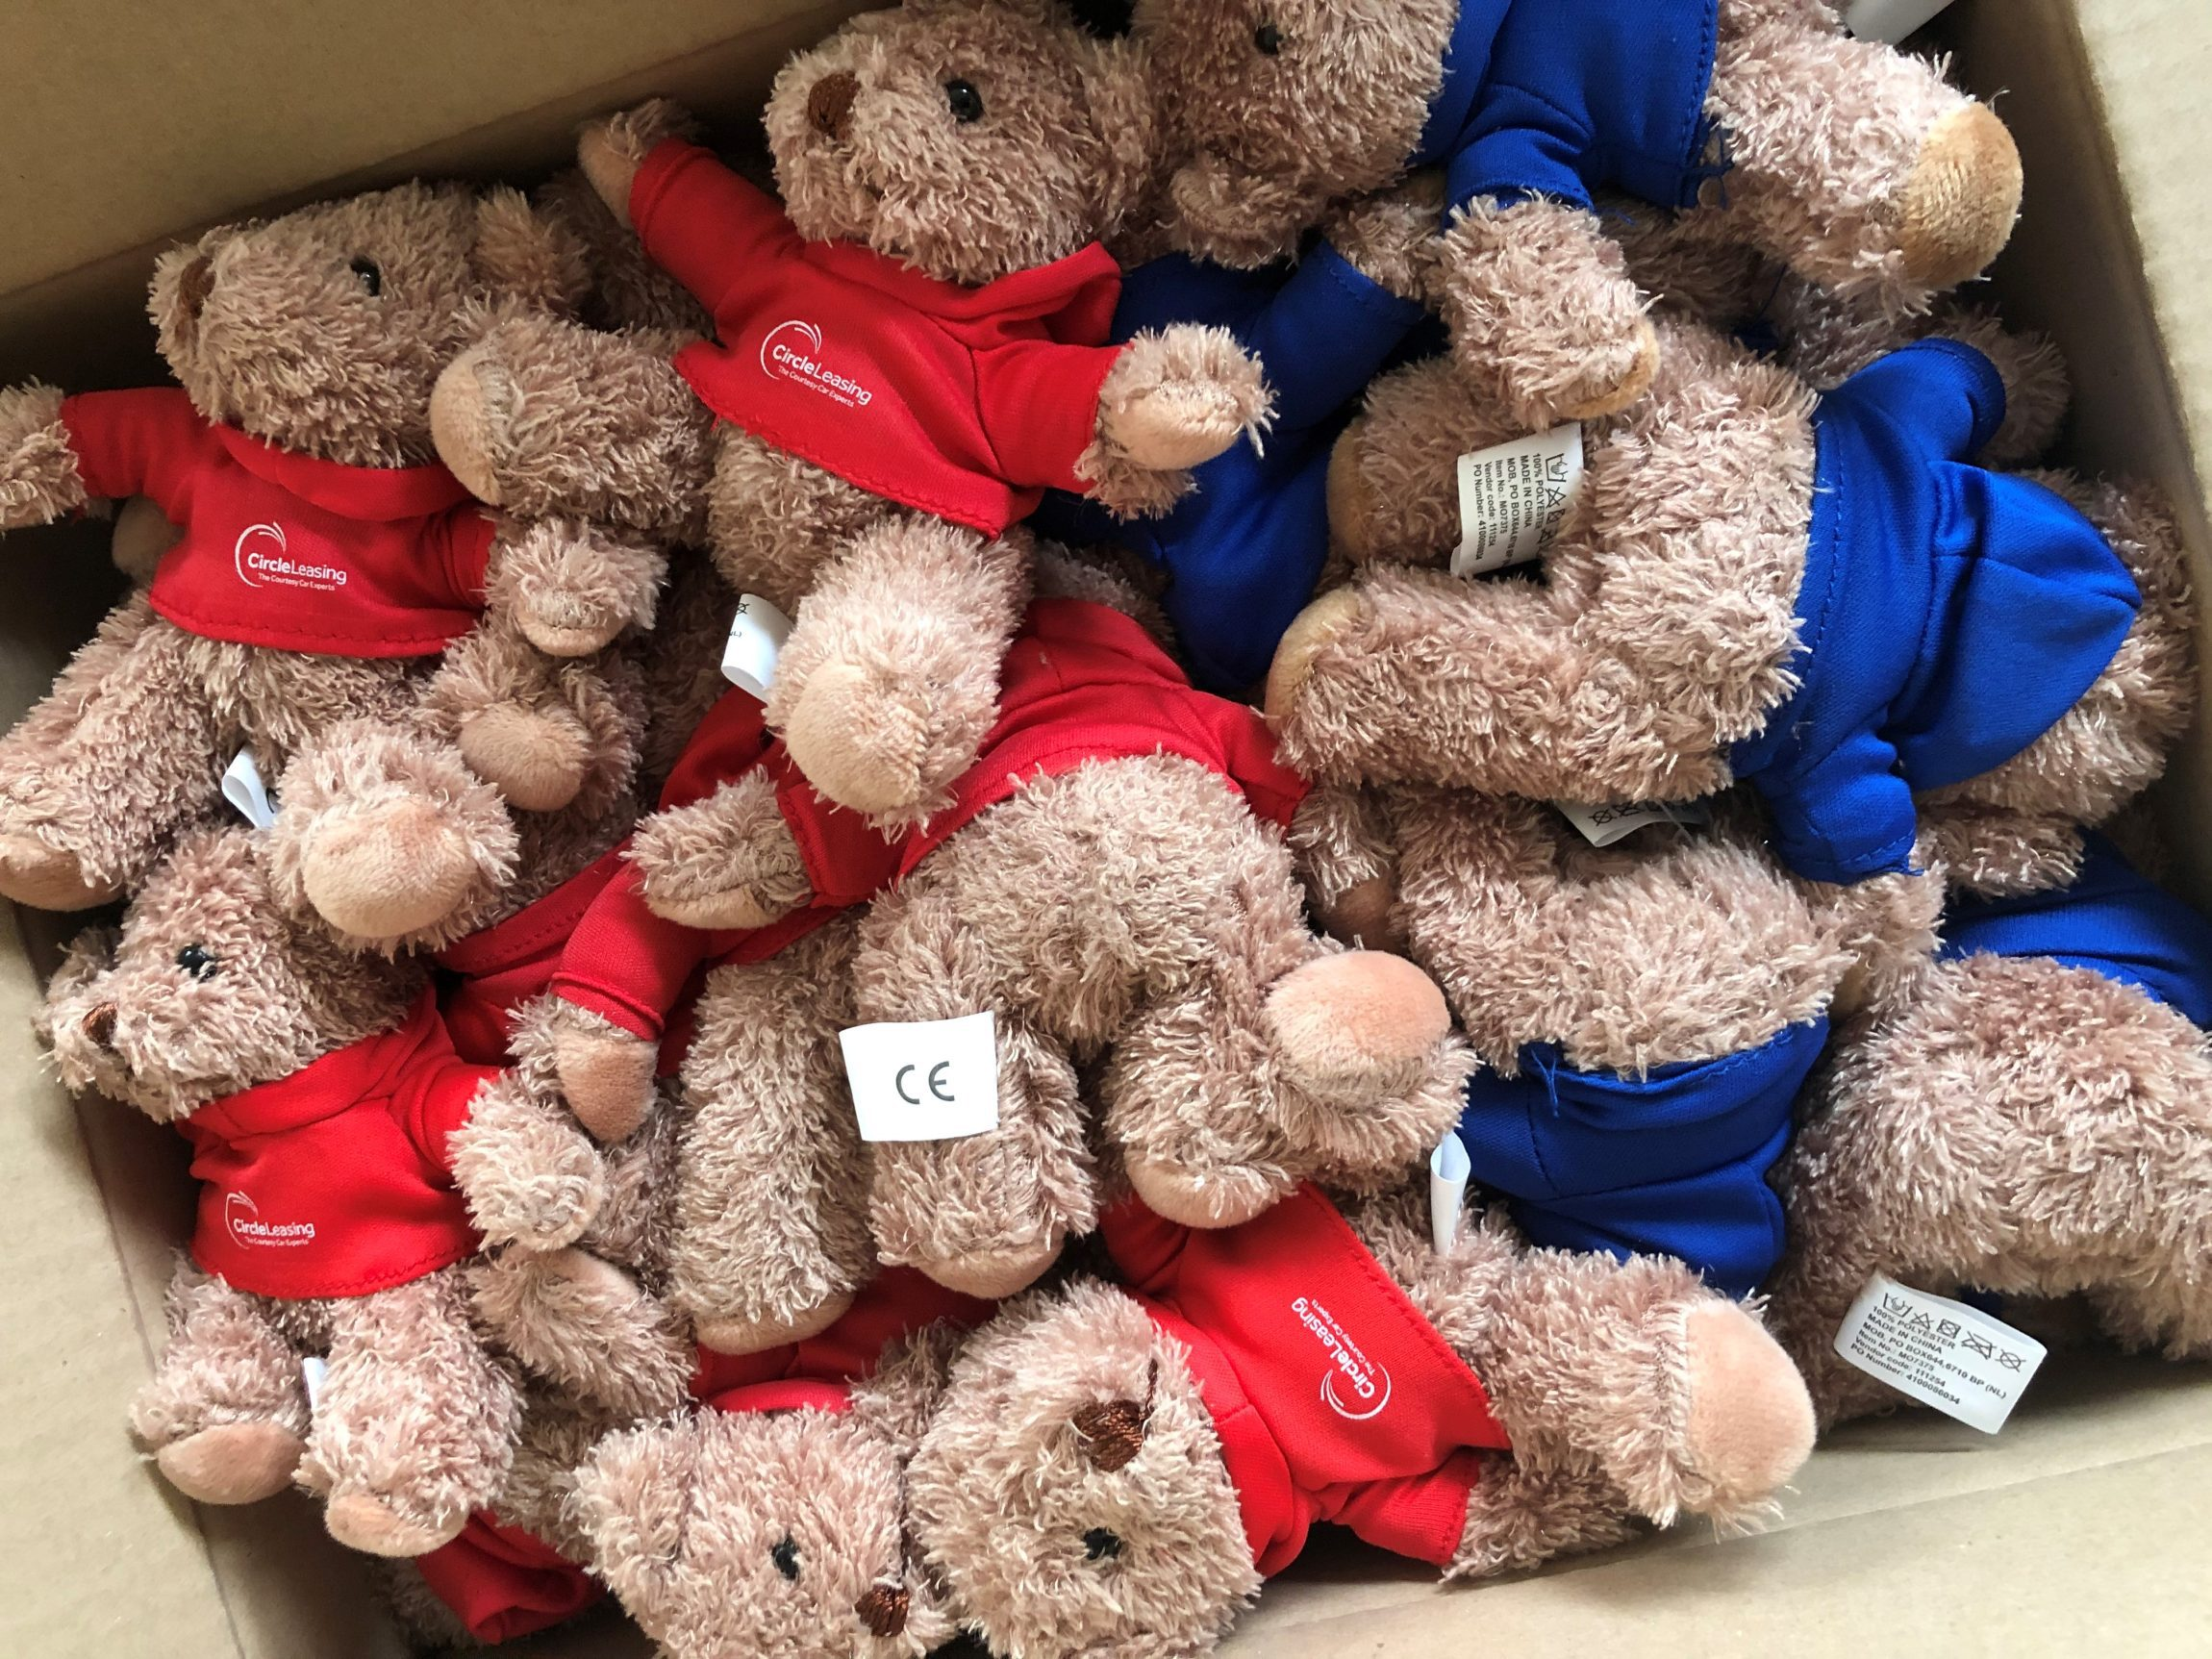 Teddy bears with company logo promotional merchandise, corporate gifts